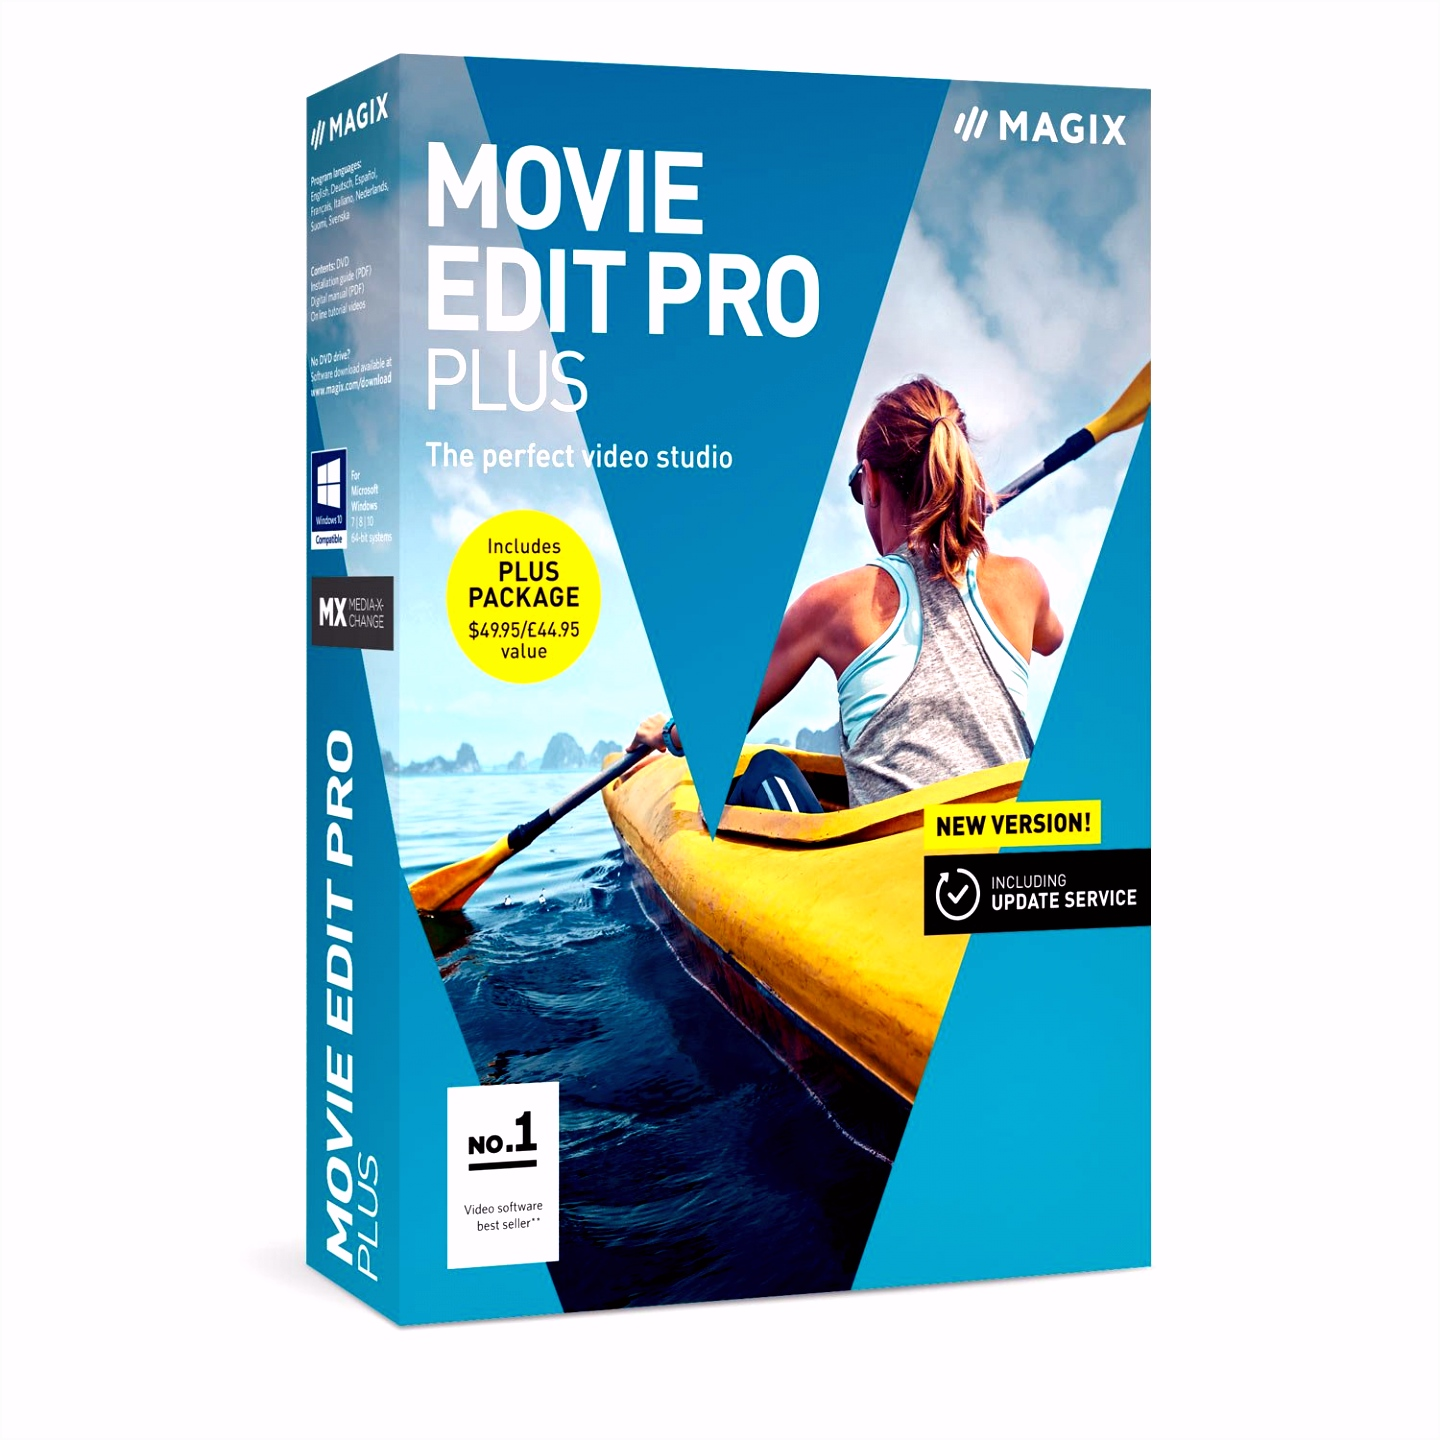 Magix Intro Vorlagen Download Amazon Magix Movie Edit Pro 2018 Plus Editing software O2iu53ndb3 Zvpc55badu